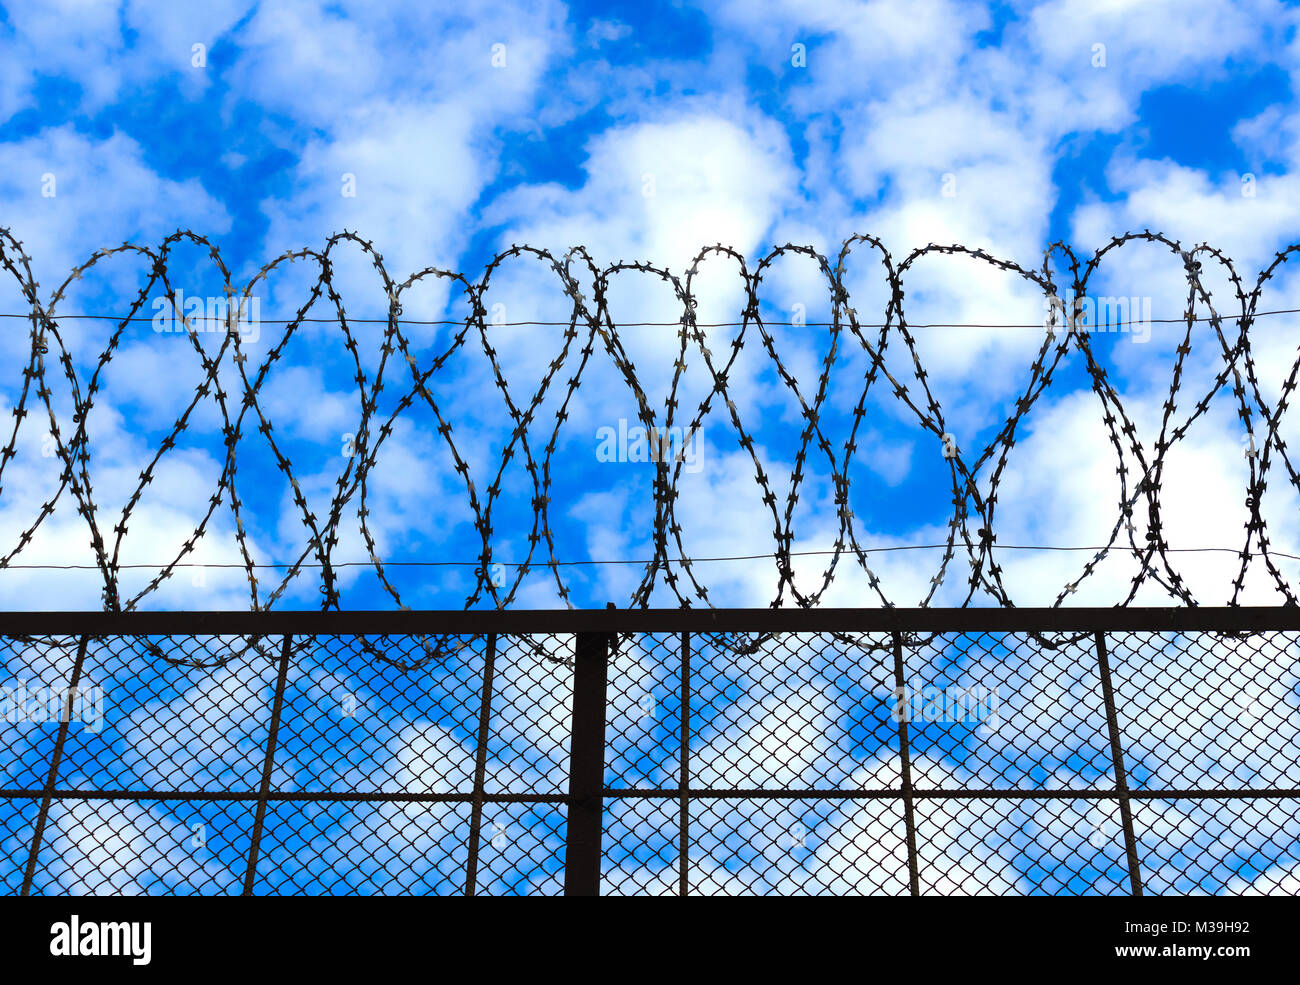 Barbed wire on the sky background - Stock Image